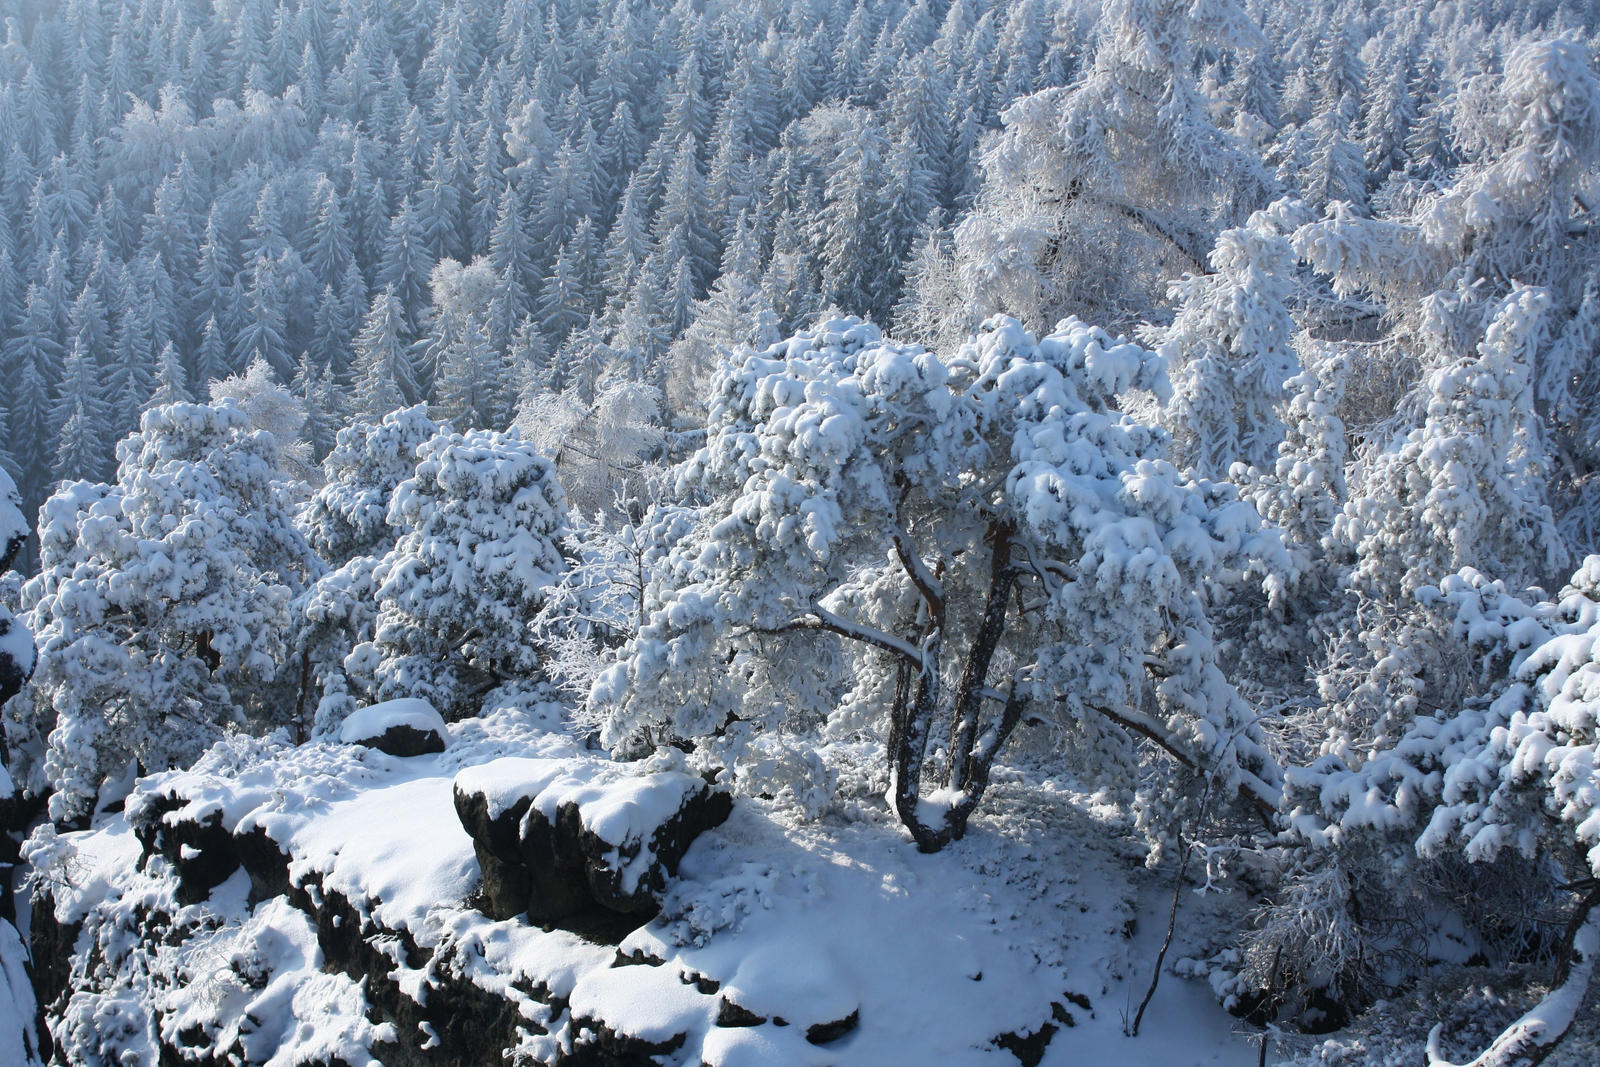 snowed stones and trees by LoveForDetails